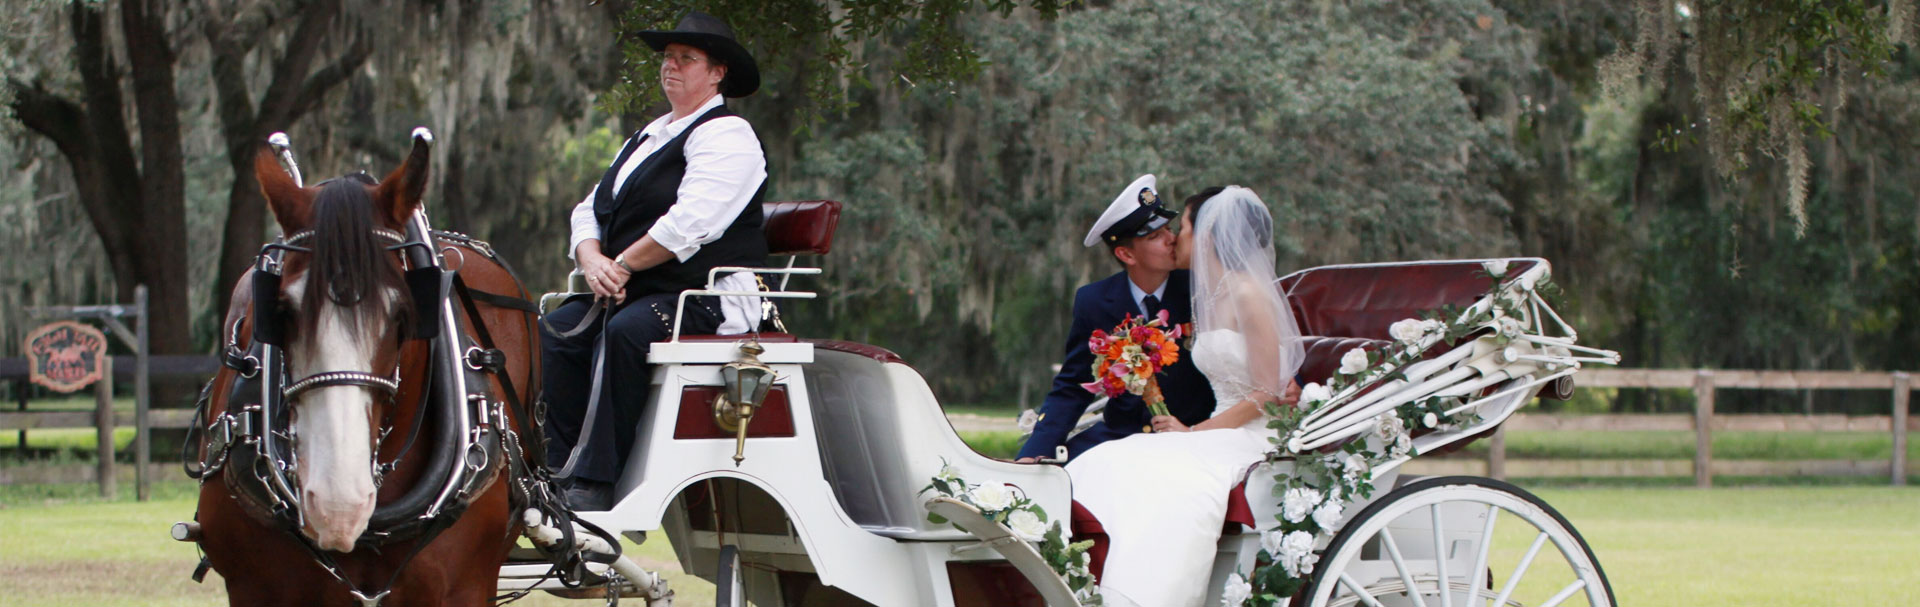 Weddings at Hotel Hilton Ocala